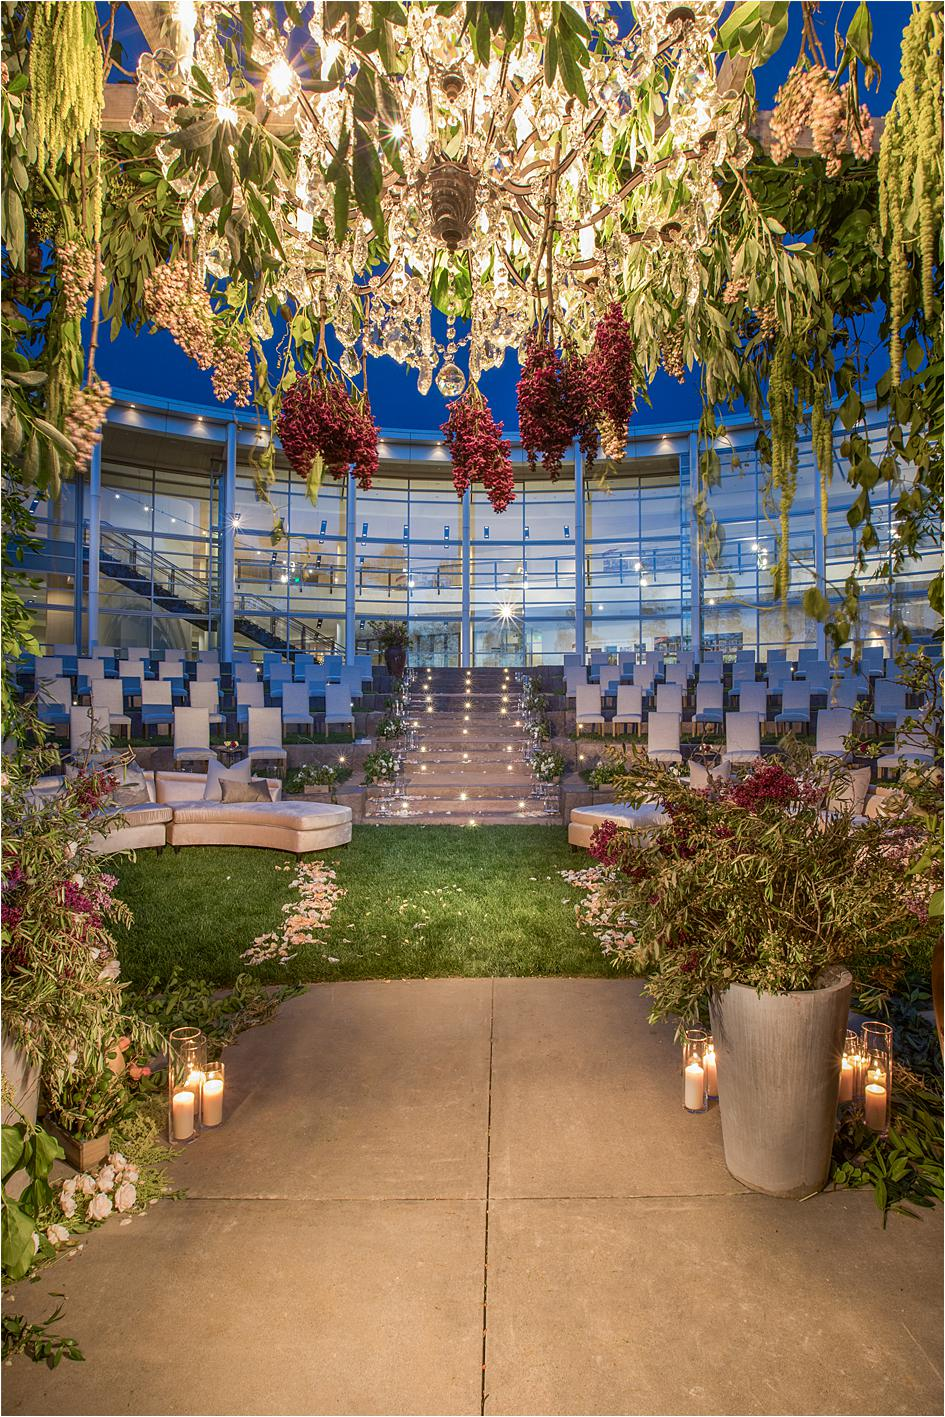 venue tour, california wedding venue, california weddings, wedding design, wedding venue, california wedding day